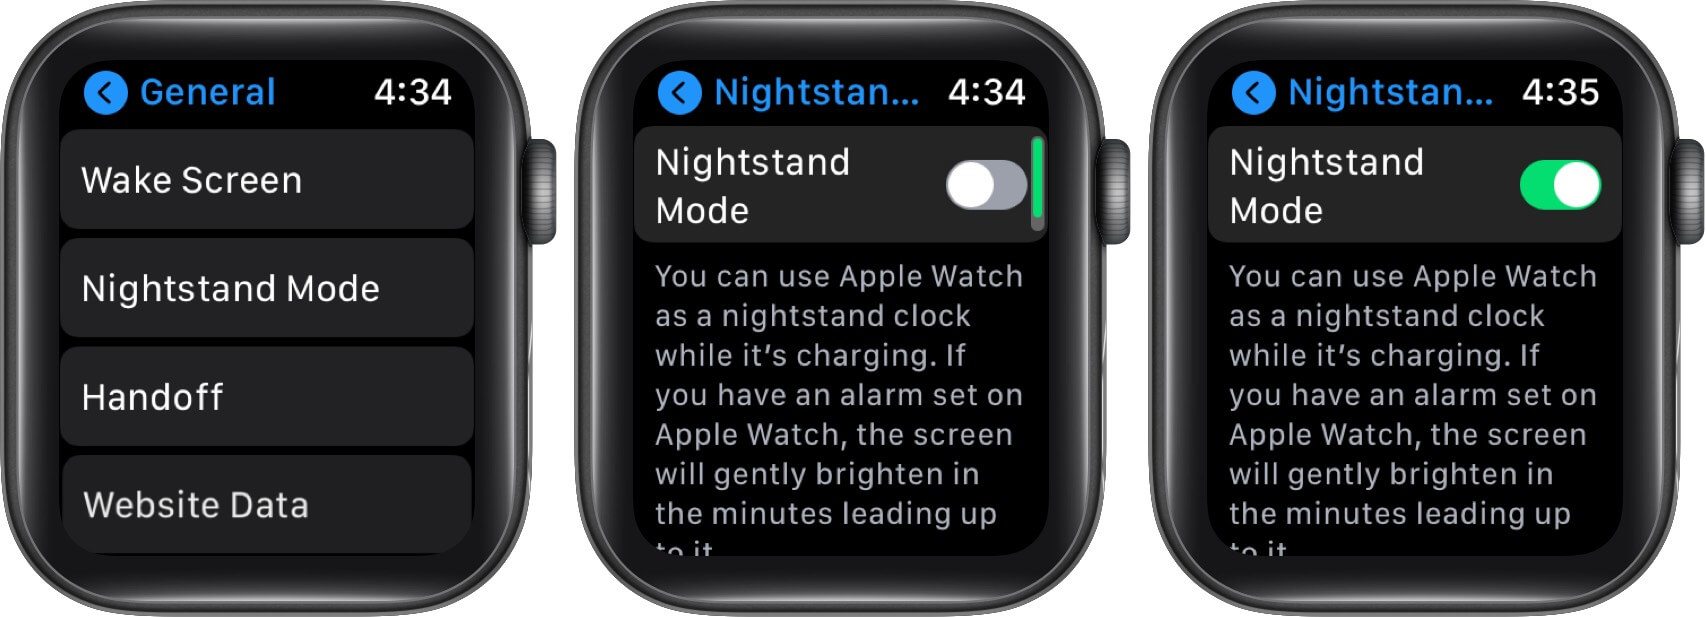 Turn ON Nightstand Mode on Apple Watch